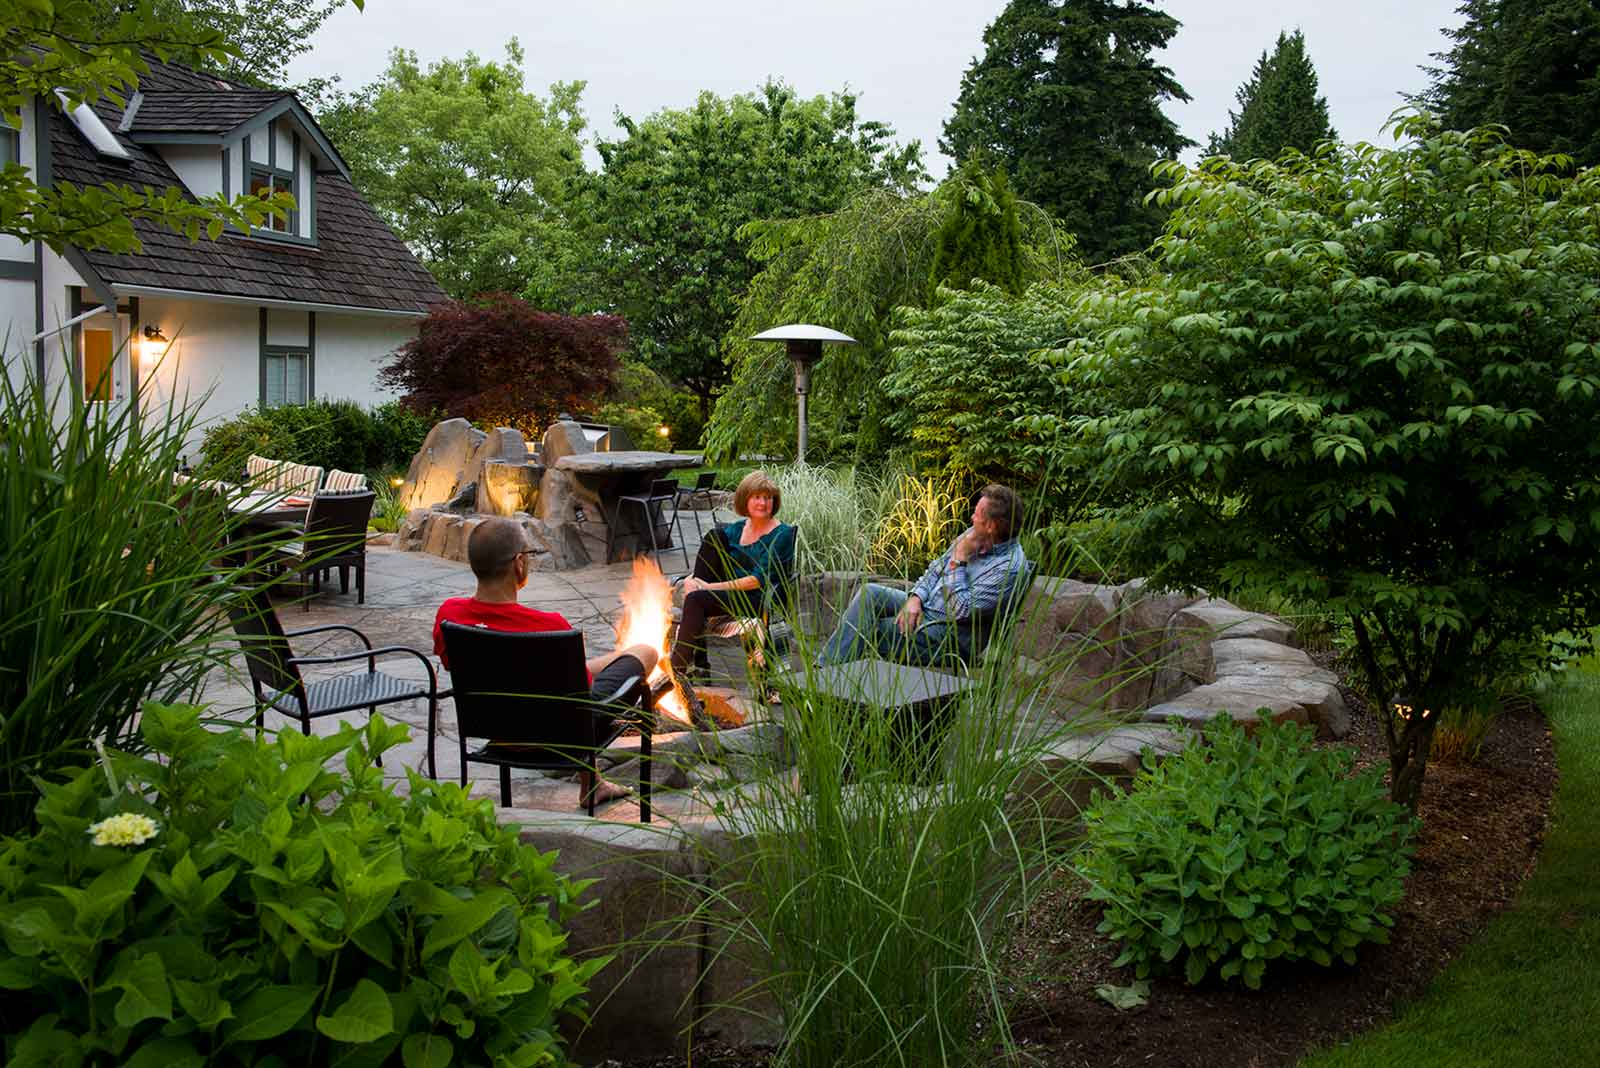 Backyard entertaining with fire pit party